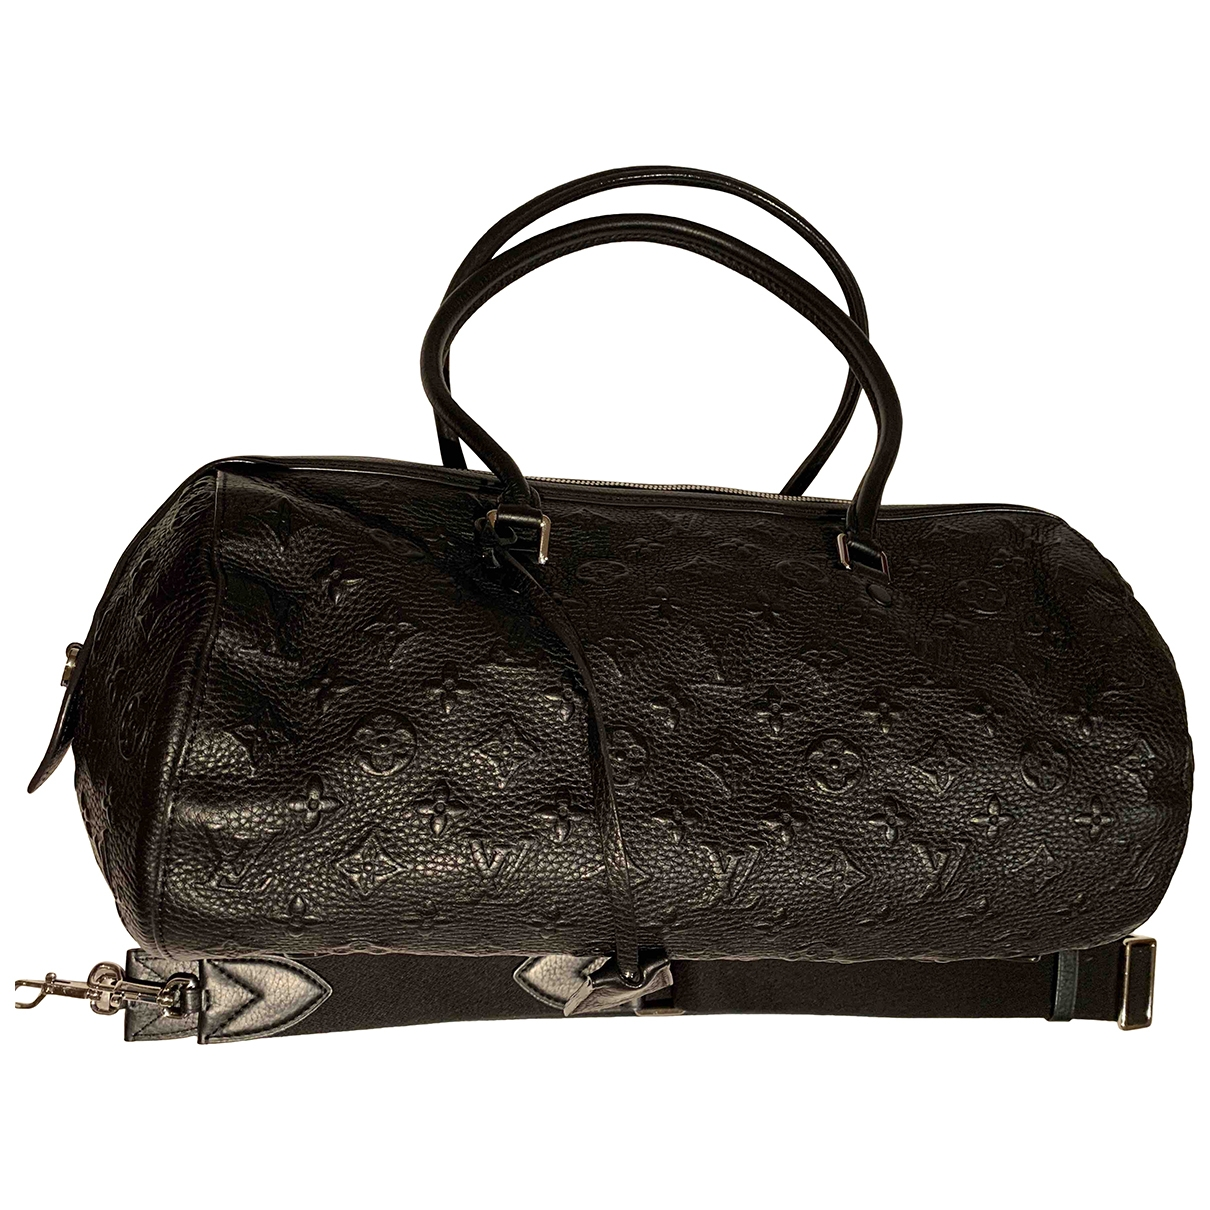 Louis Vuitton Papillon Handtasche in  Schwarz Leder